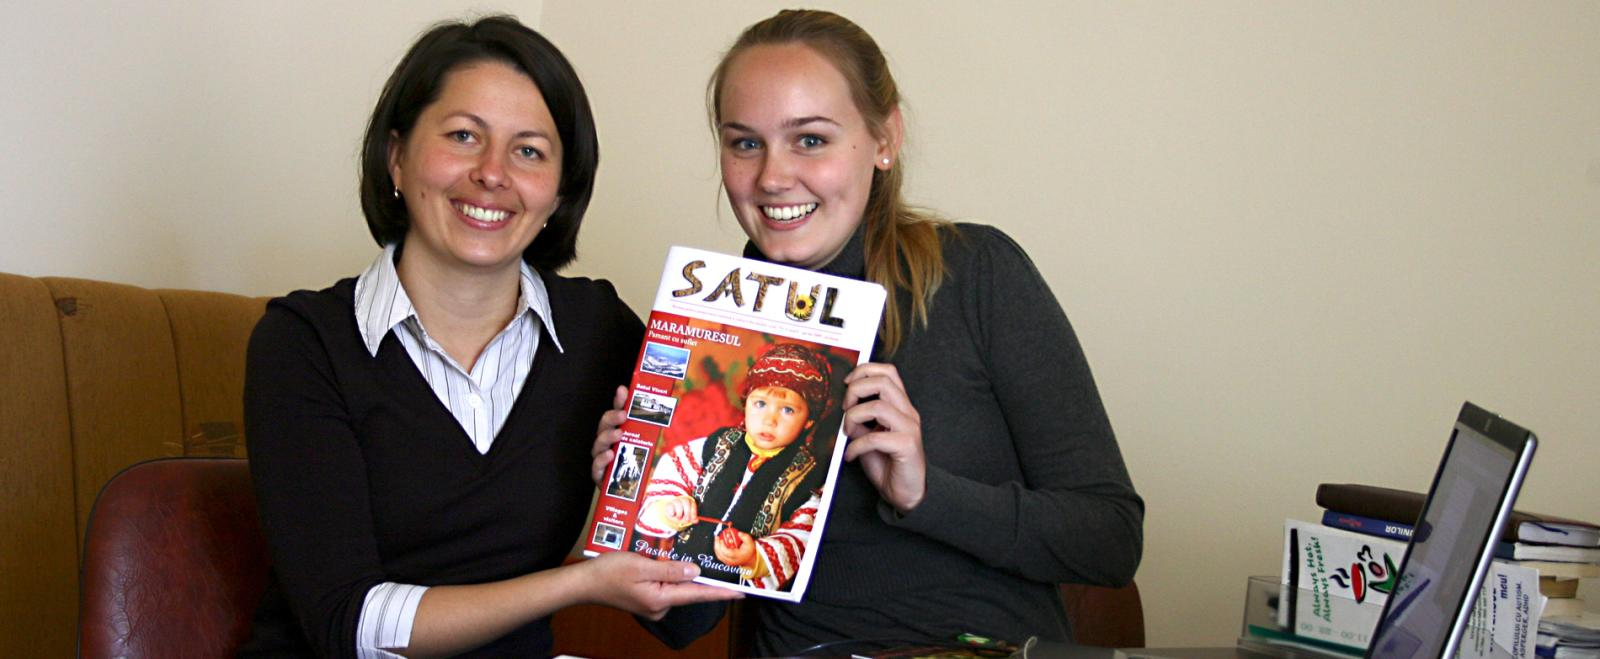 A Journalism intern contributes work to a local magazine in Romania during her summer break in high school.